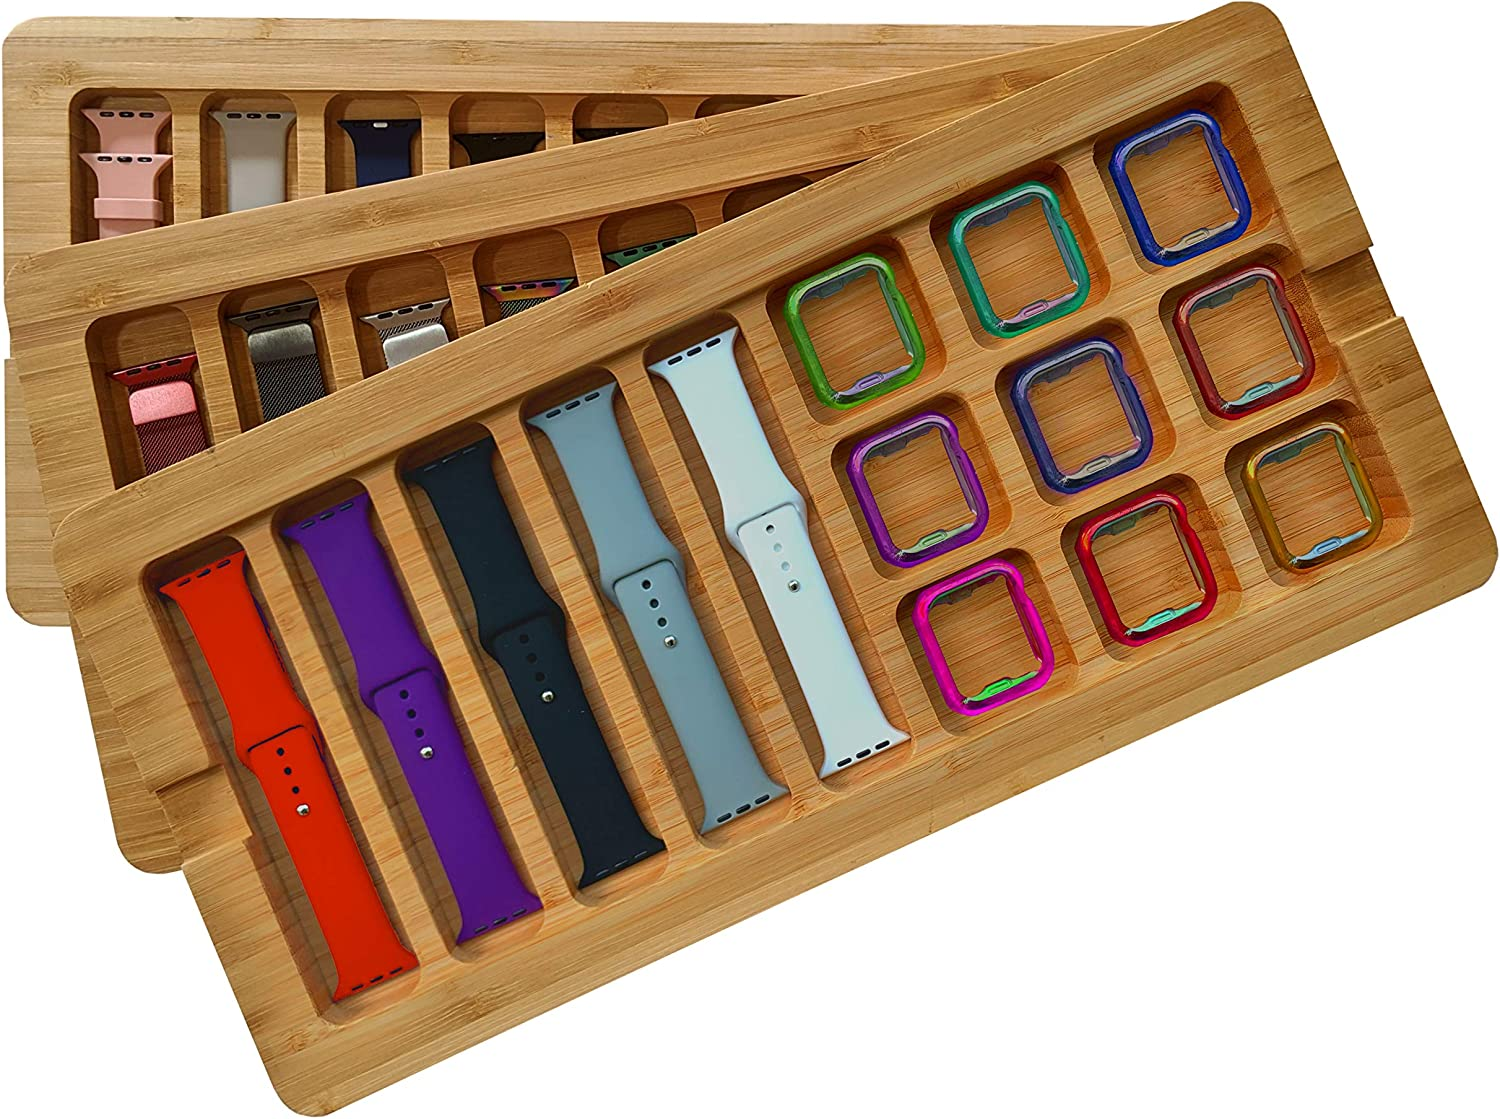 Stackable Bamboo Storage Tray for Apple Watch Bands (Stores 5+ Bands, Stores 9+ Covers, Wood, Includes Cover)